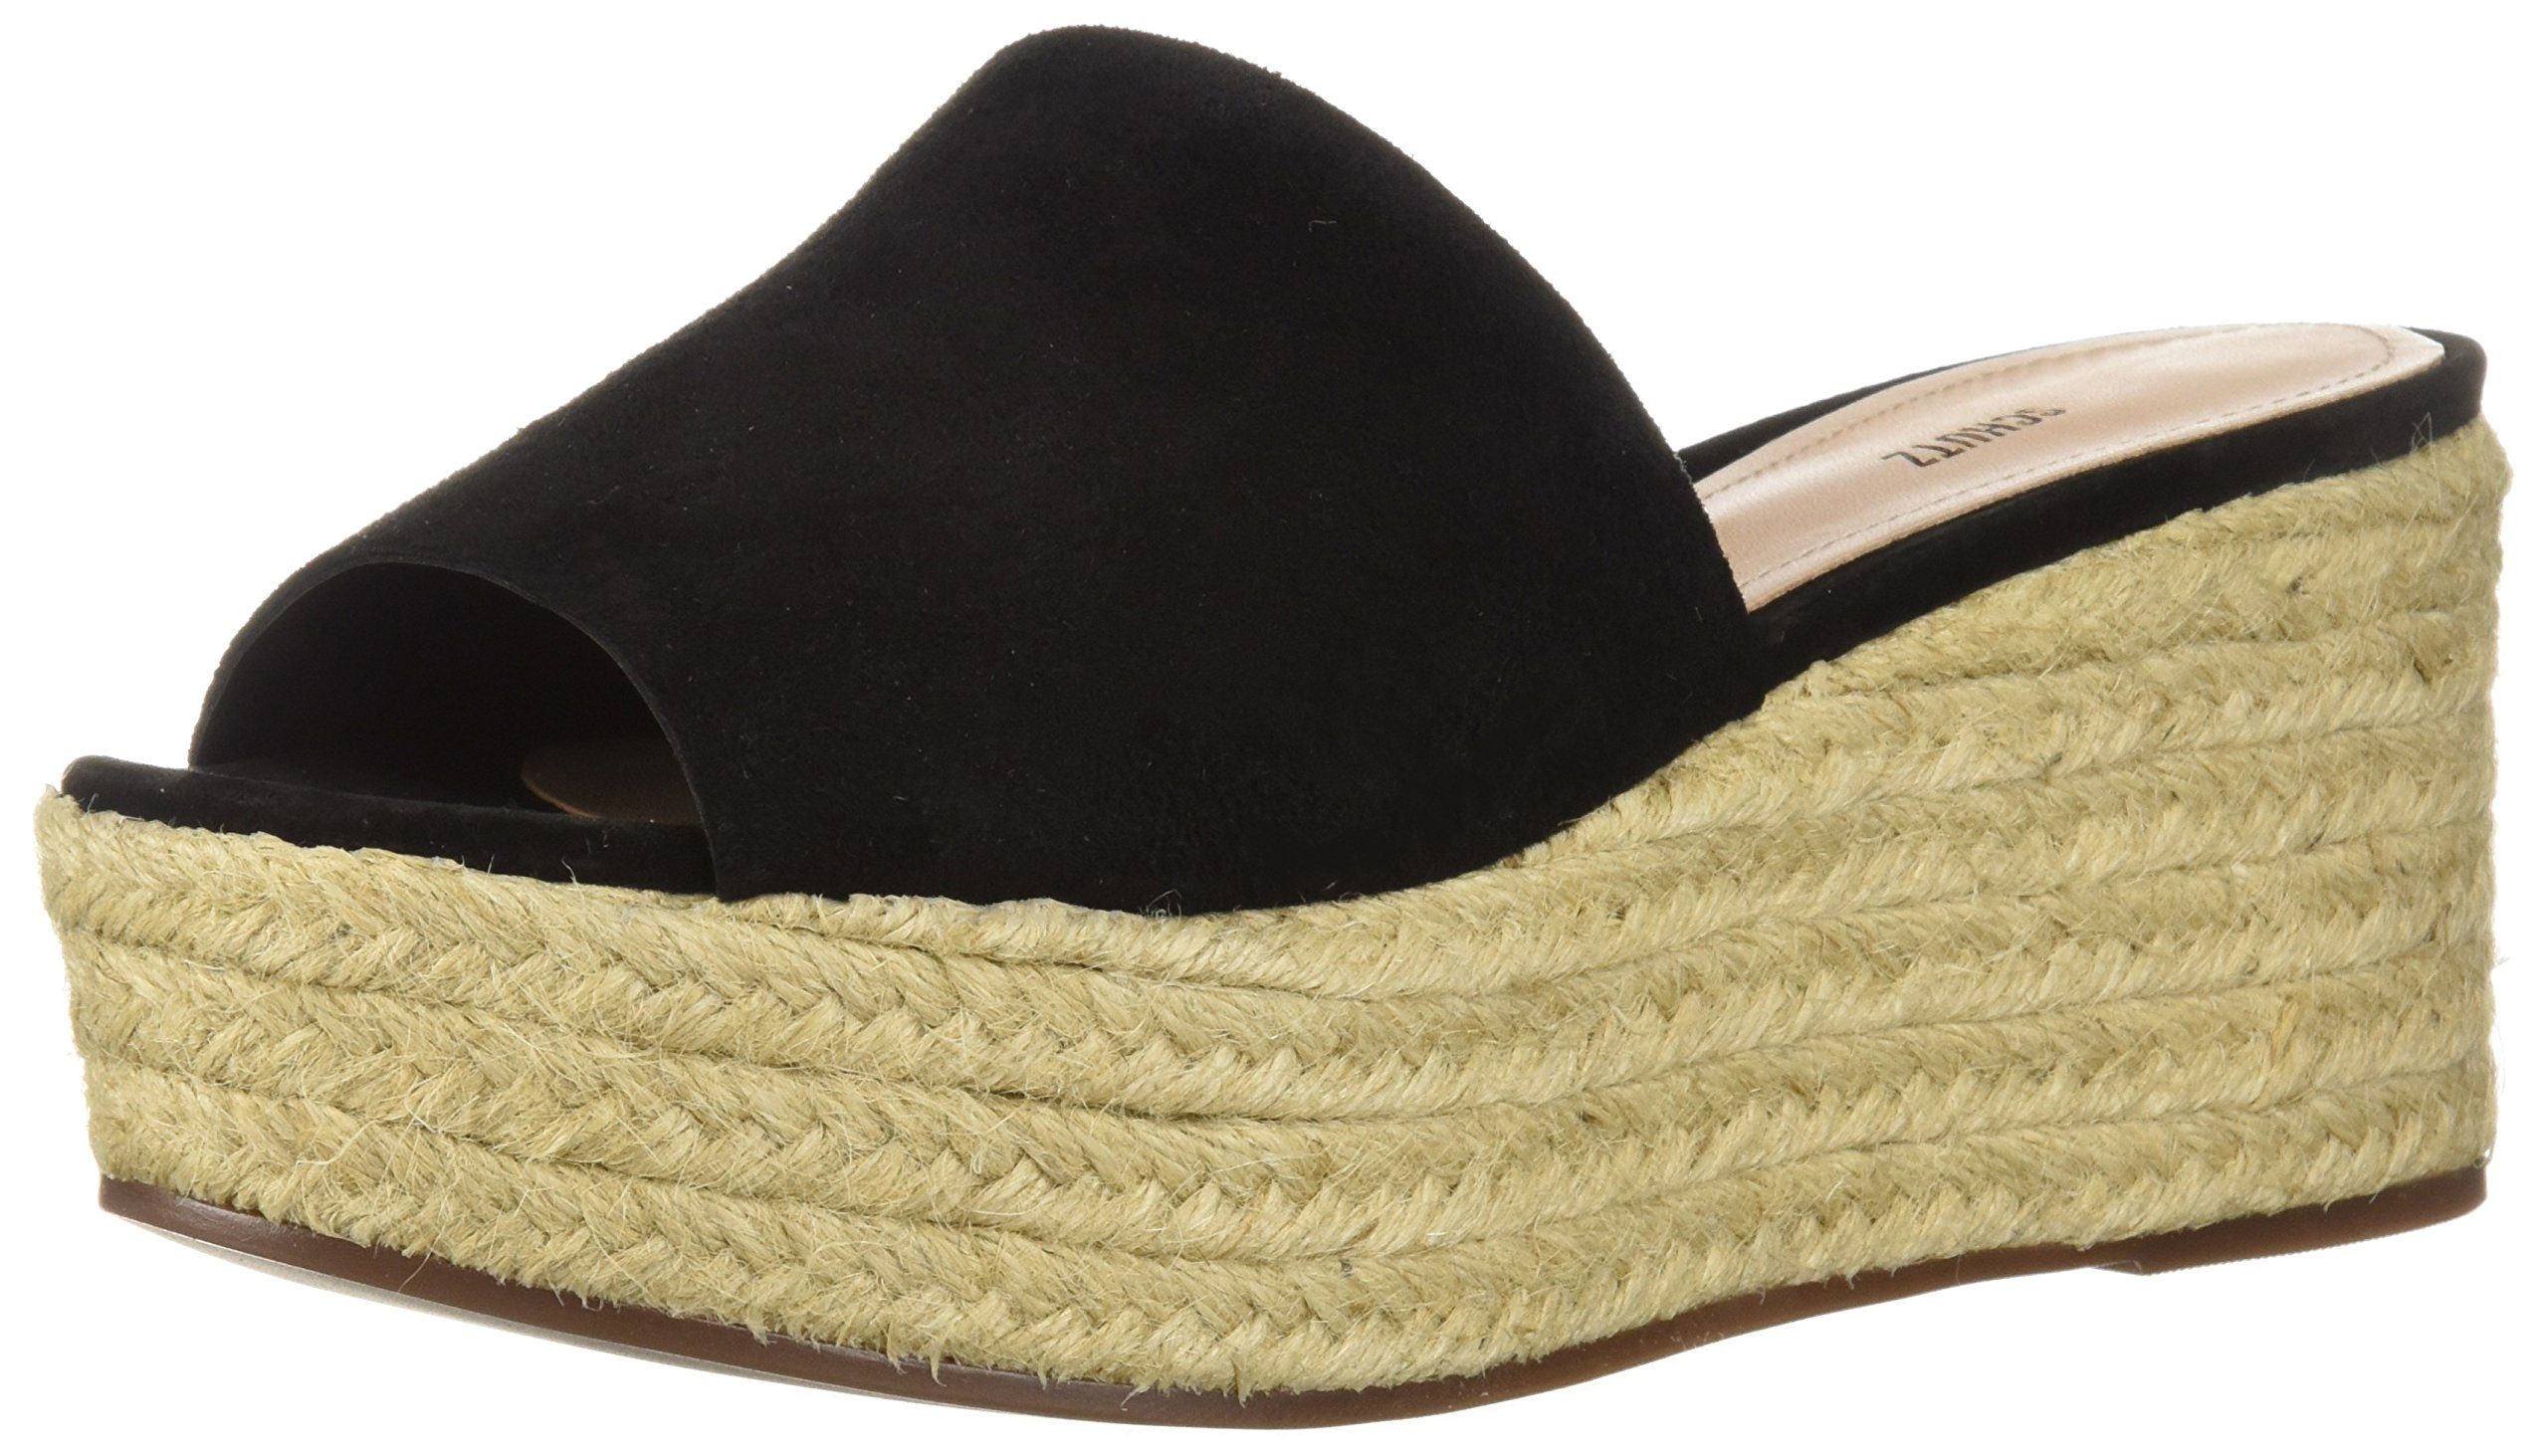 SCHUTZ Women's Thalia Espadrille Wedge Sandal, Black, 10 M US